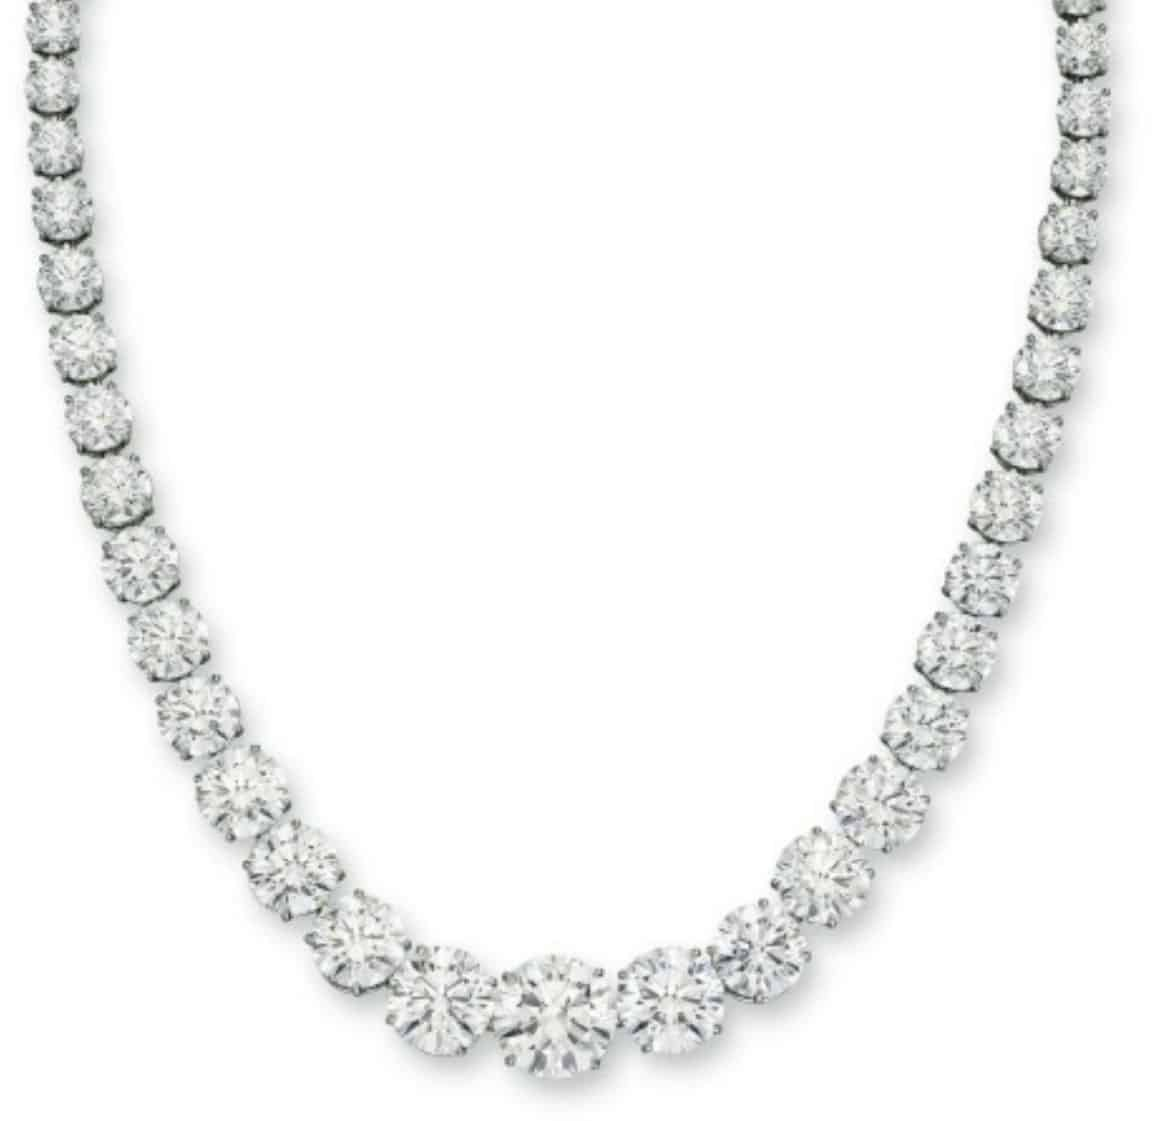 Lot 254 - An Important Diamond Necklace